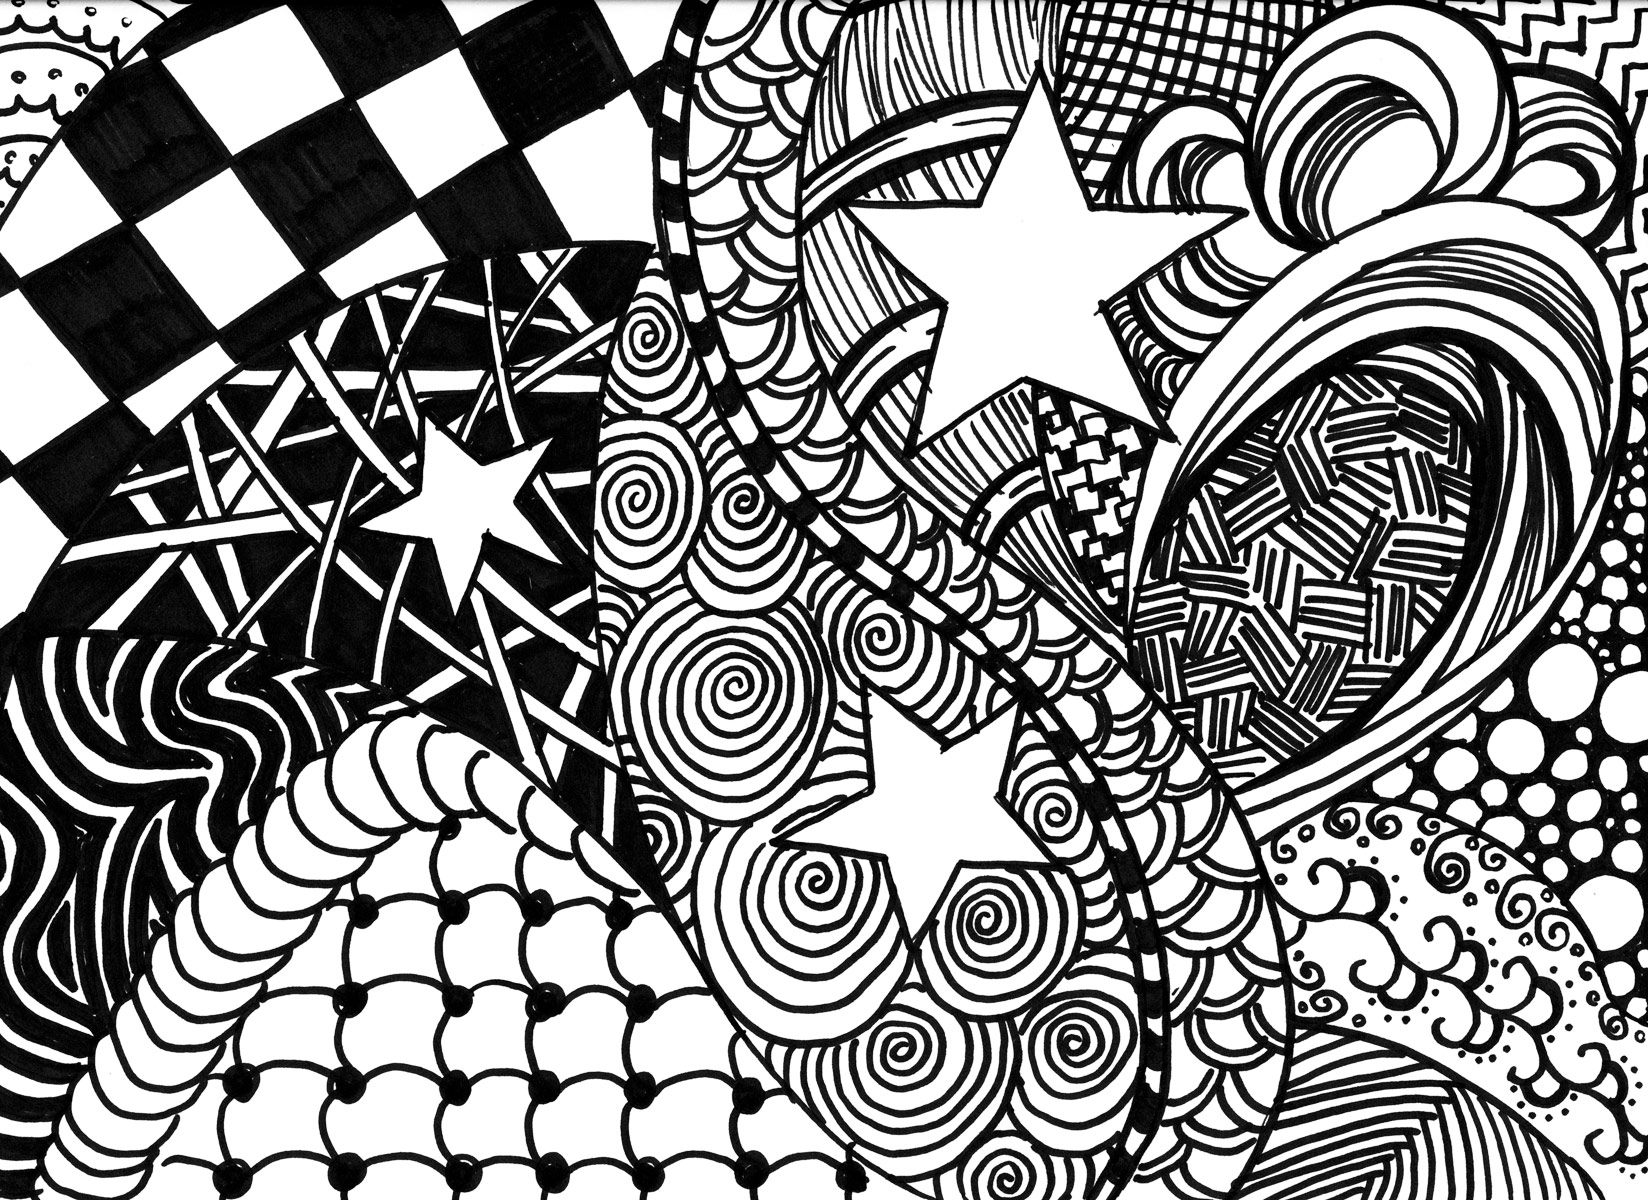 1000+ images about Zentangle on Pinterest | Tree frogs ...